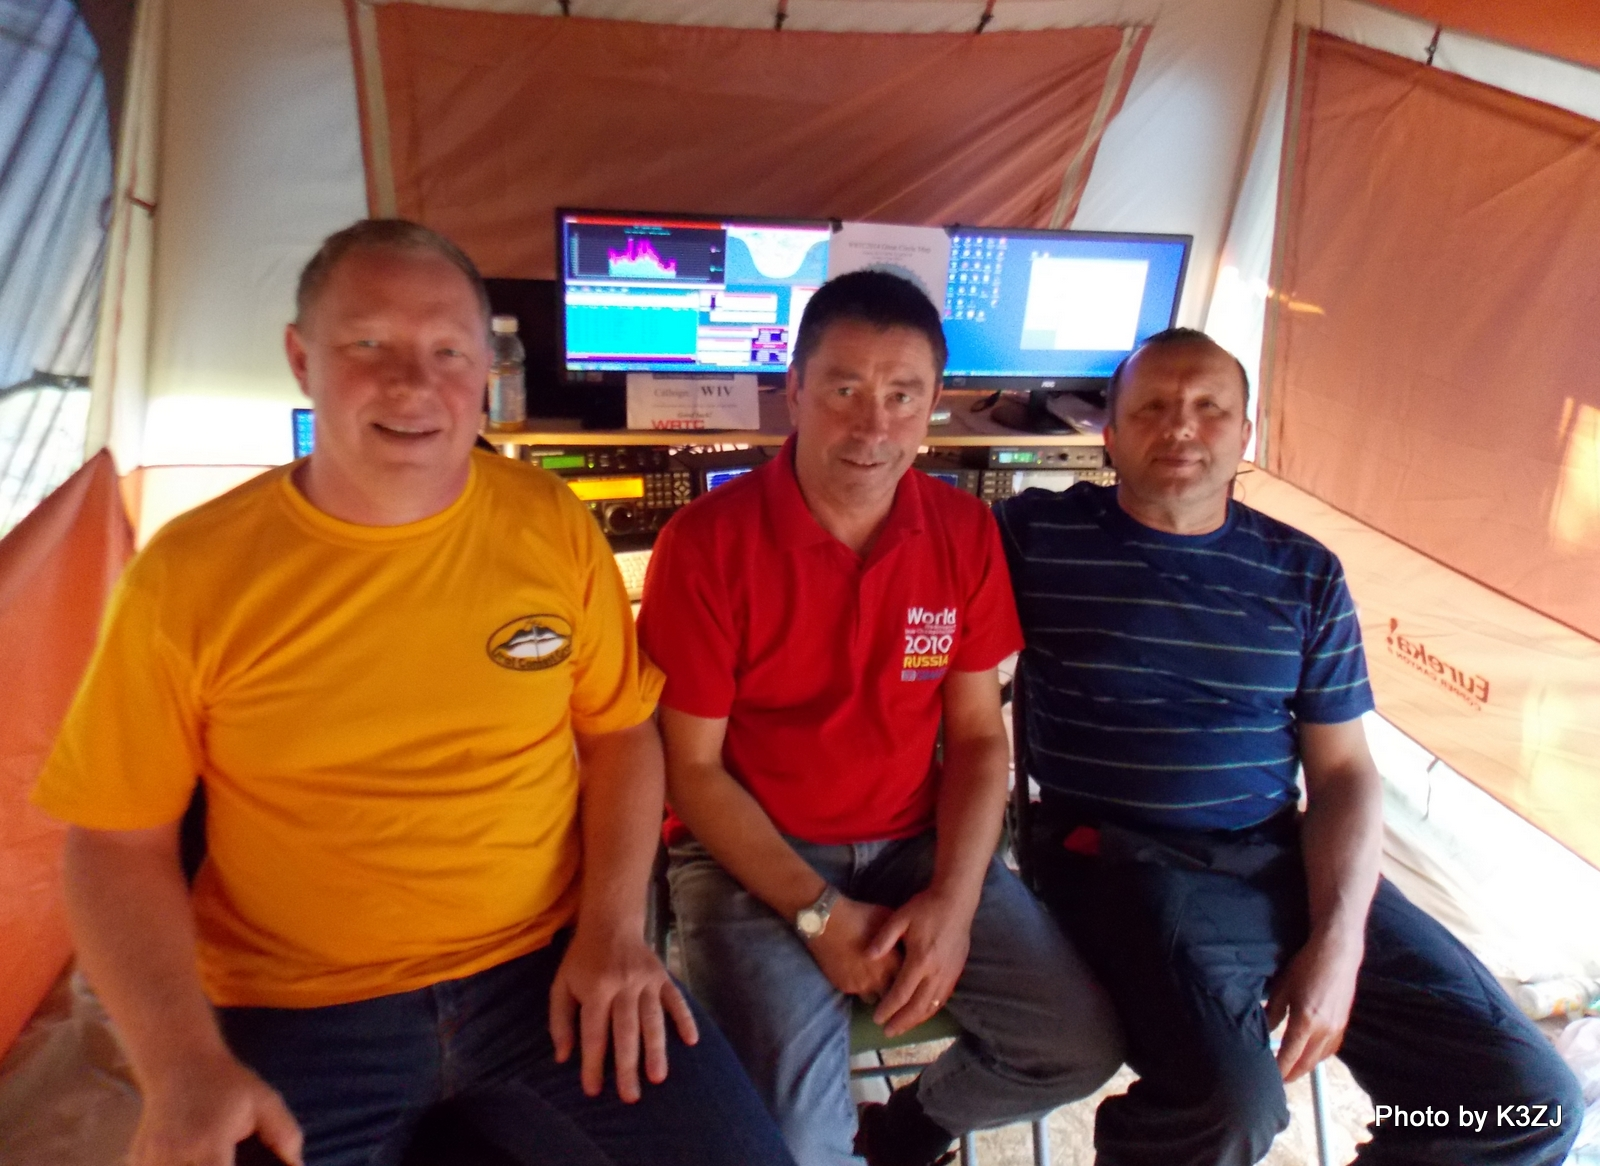 R9DX, GM4AFF & UA9CDV at the Conclusion of WRTC2014 at W1V (5).JPG